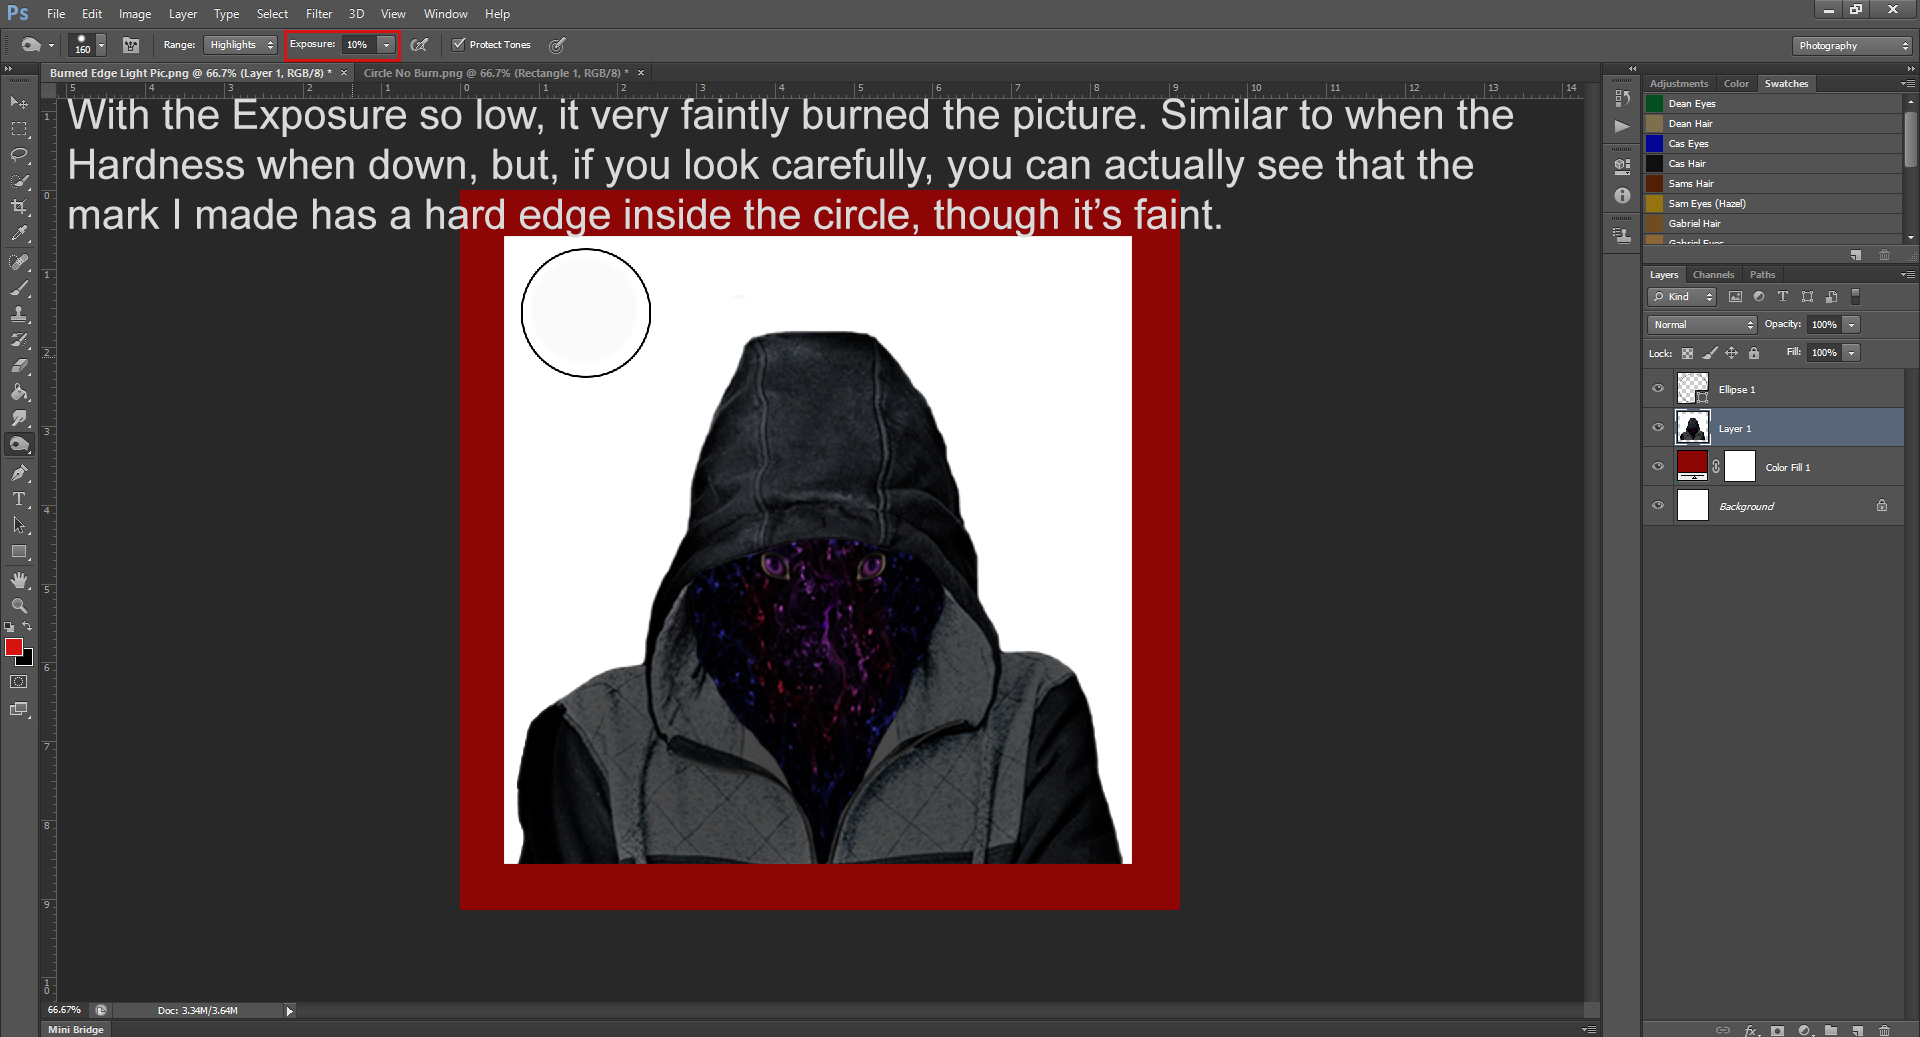 AterImber.com - Writing - Writing Tips - PHSH Effect Series - Burning a Picture - 10% Exposure Burn